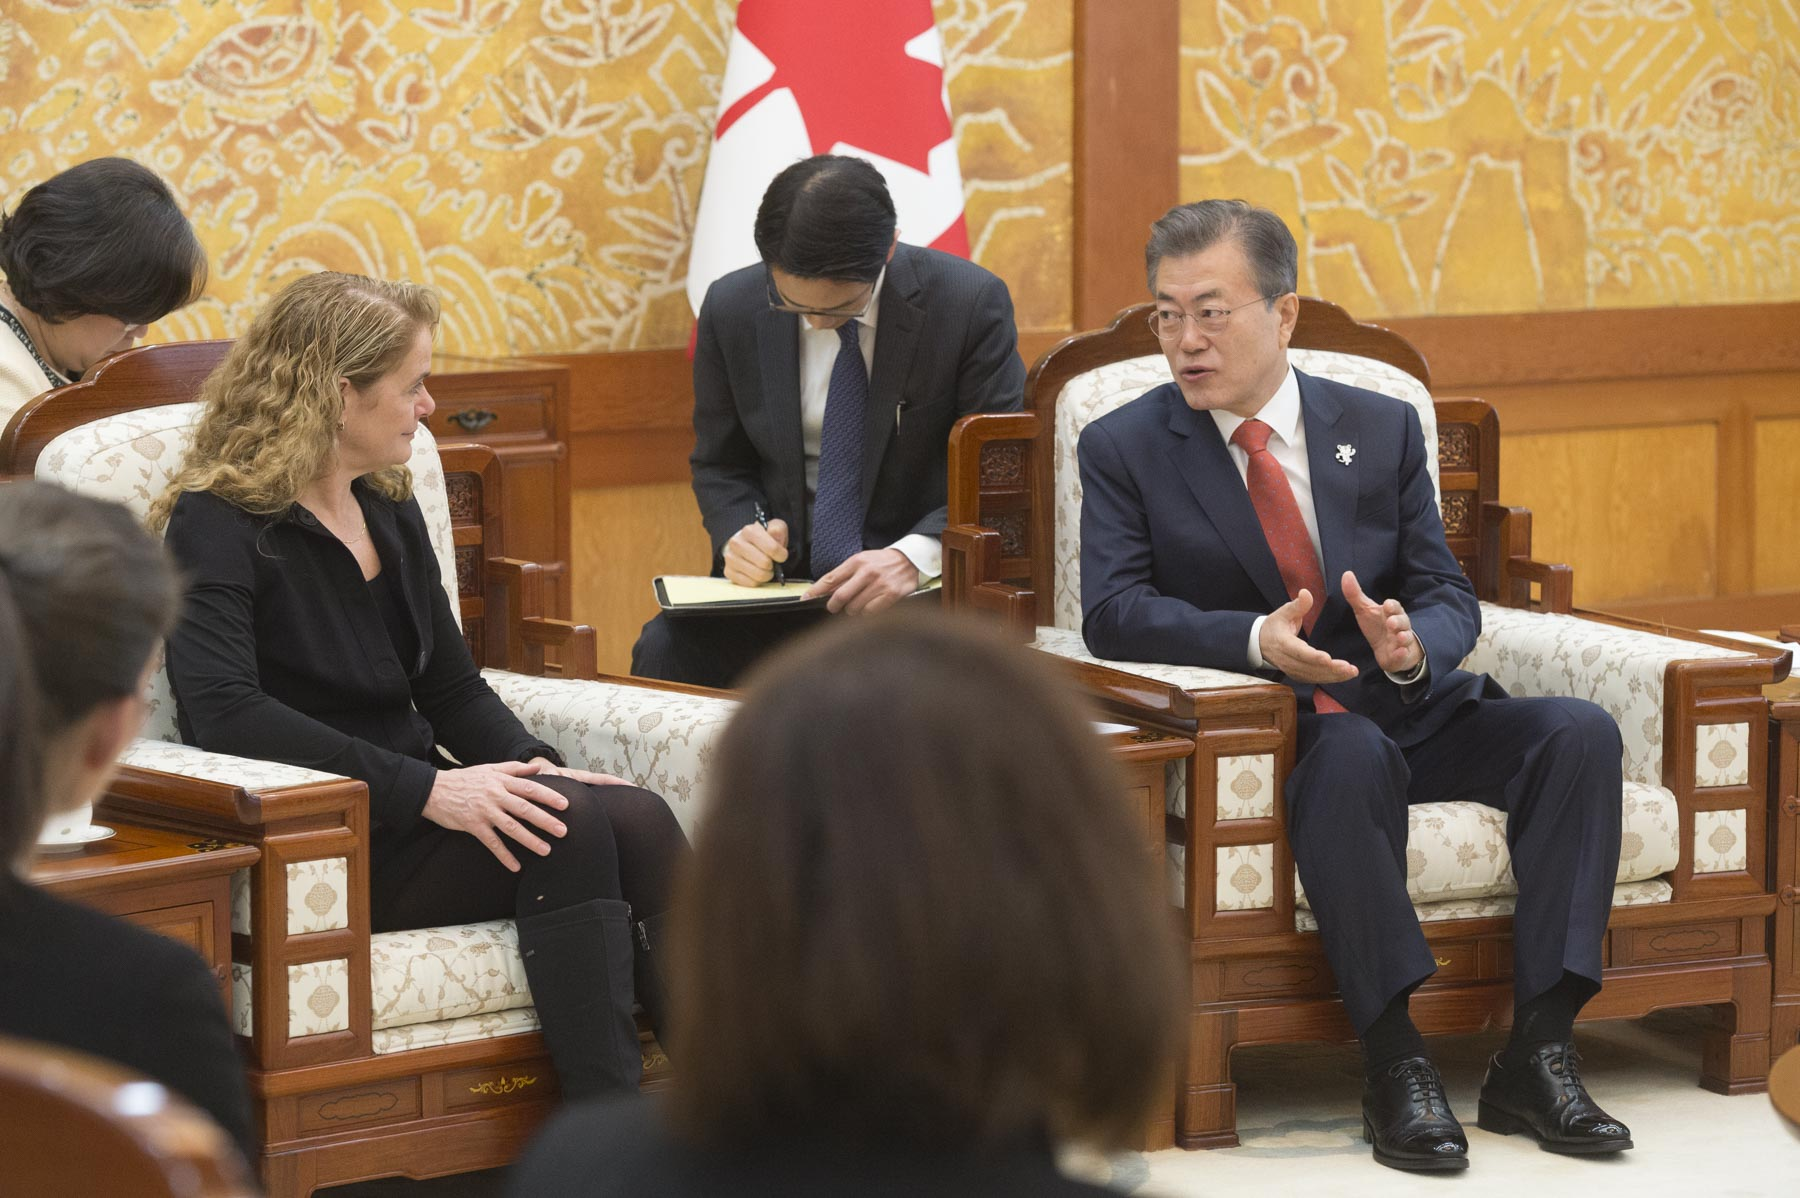 During the meeting, the Governor General and the President discussed Canada-Korea relations and the upcoming Olympic Games.